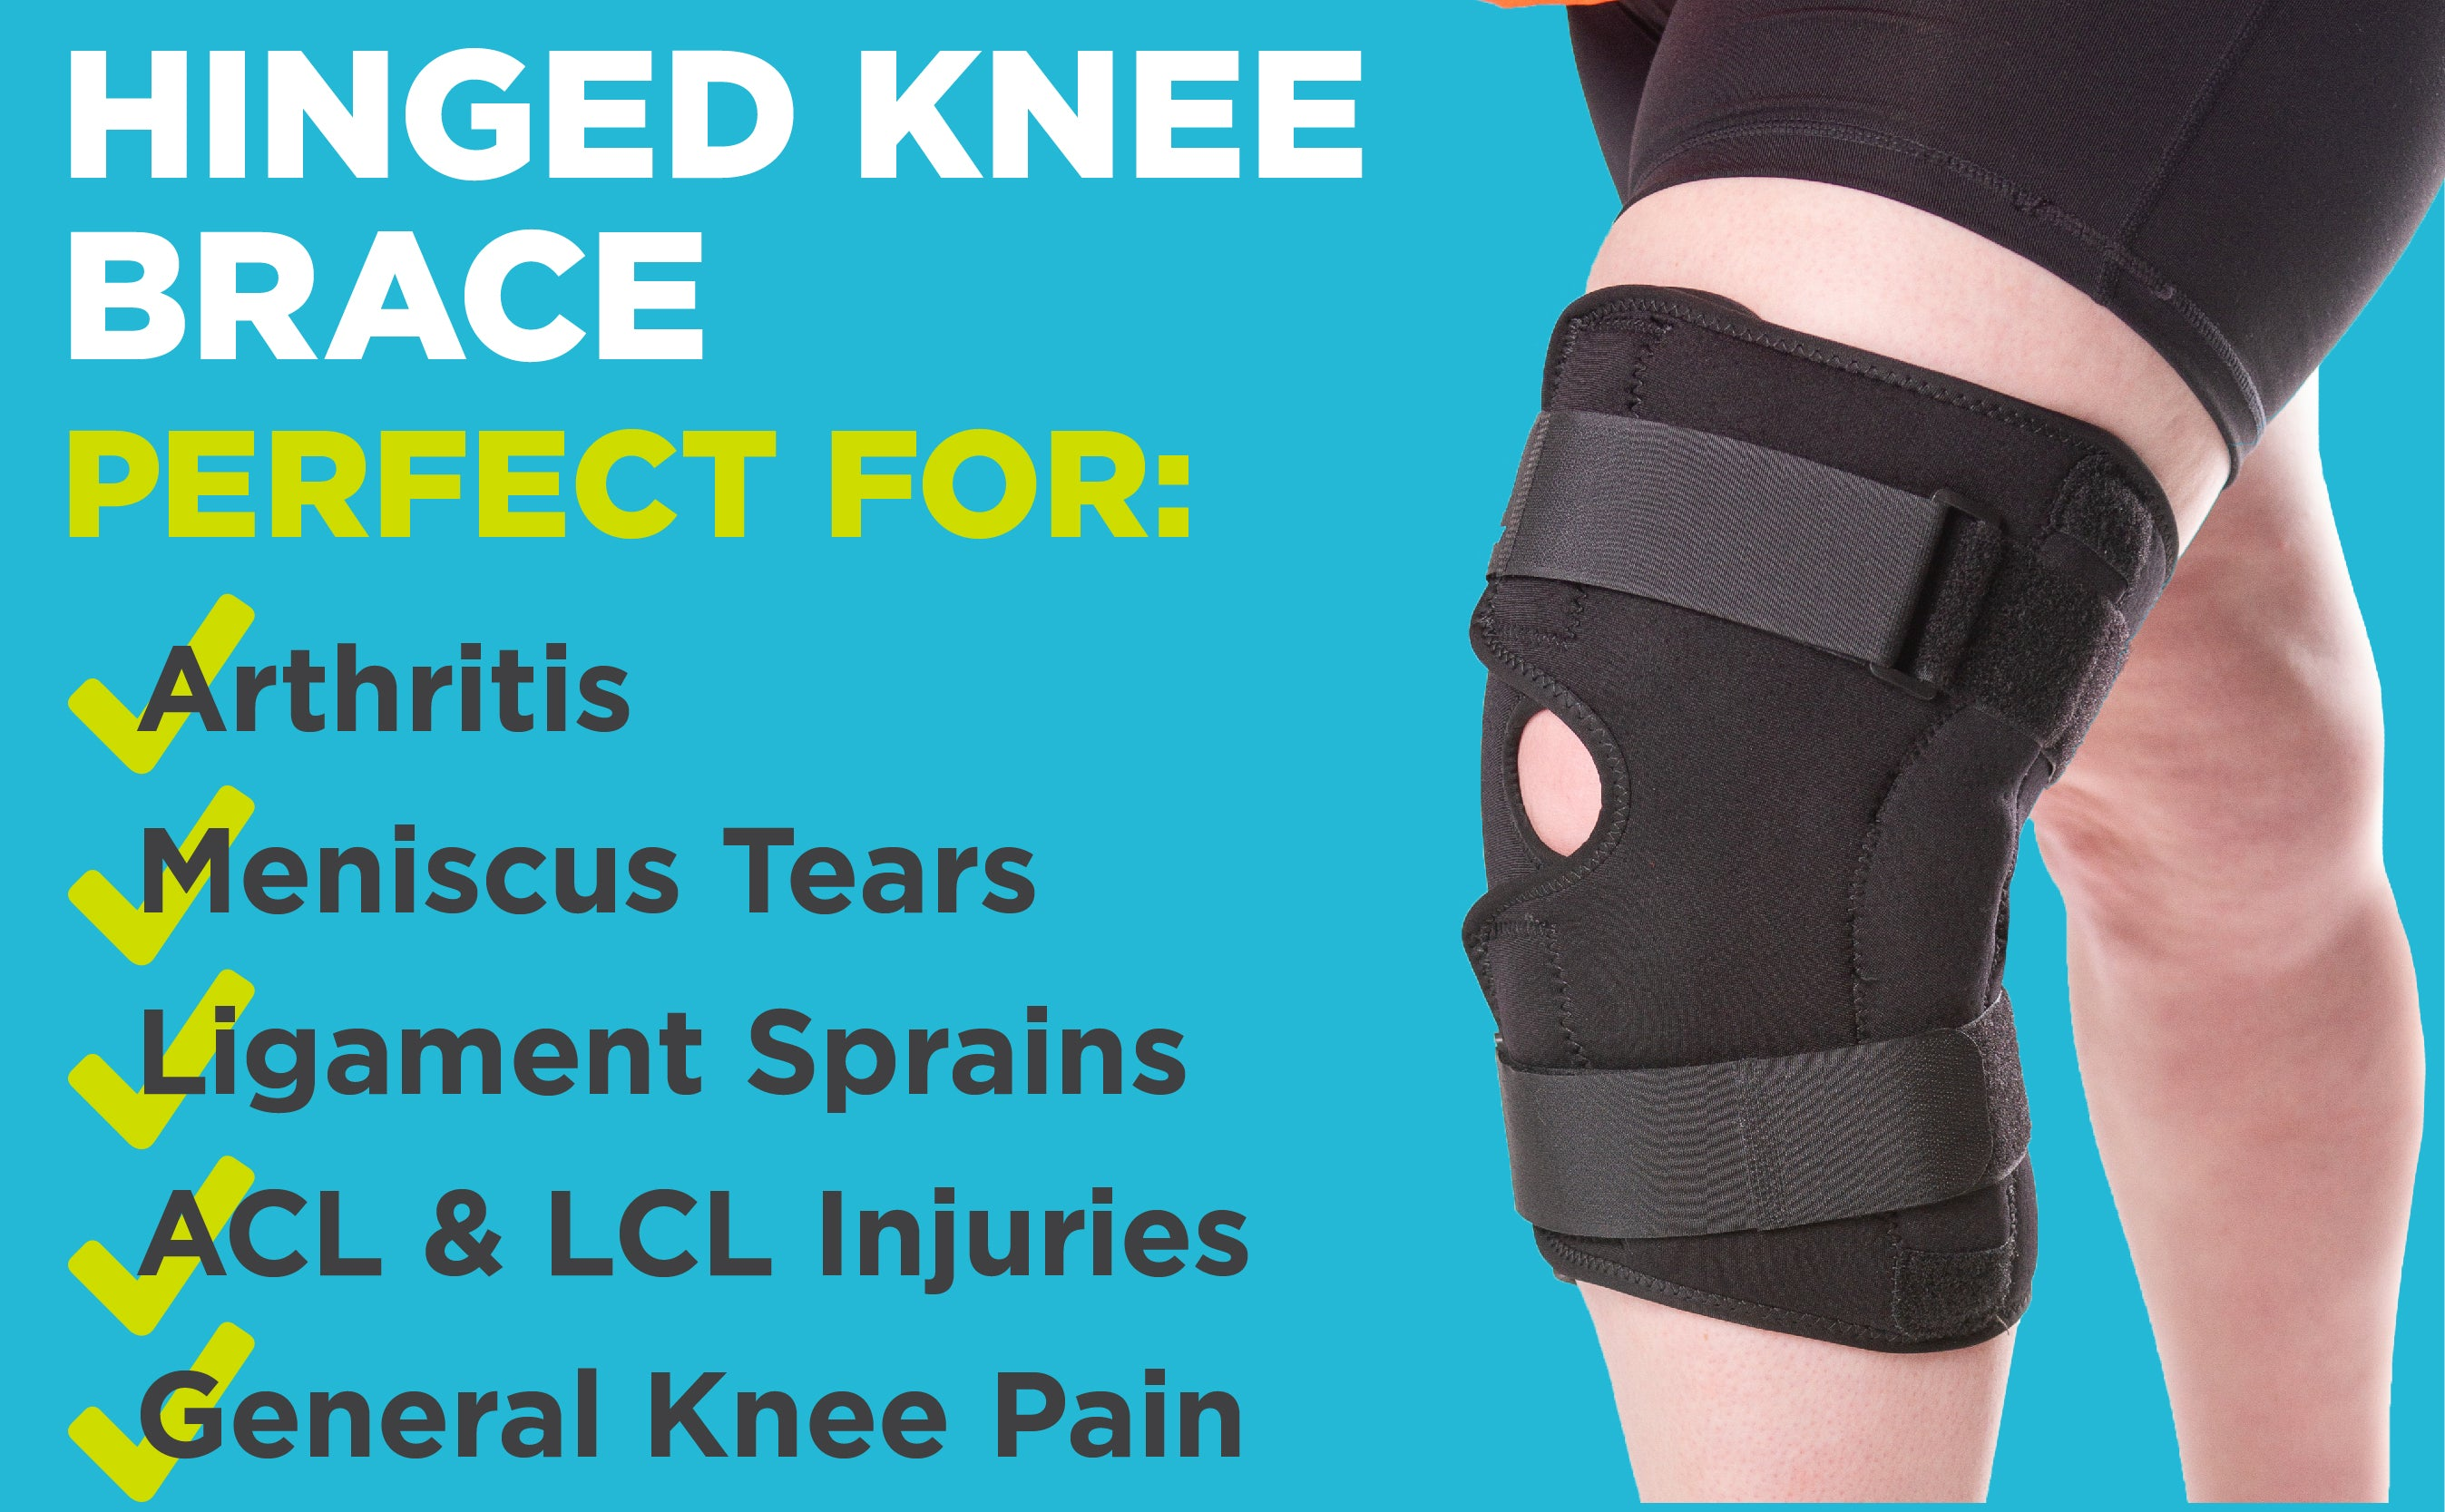 our hinged knee brace is perfect for arthritis, meniscus tears, ligament sprains, and acl and lcl injuries